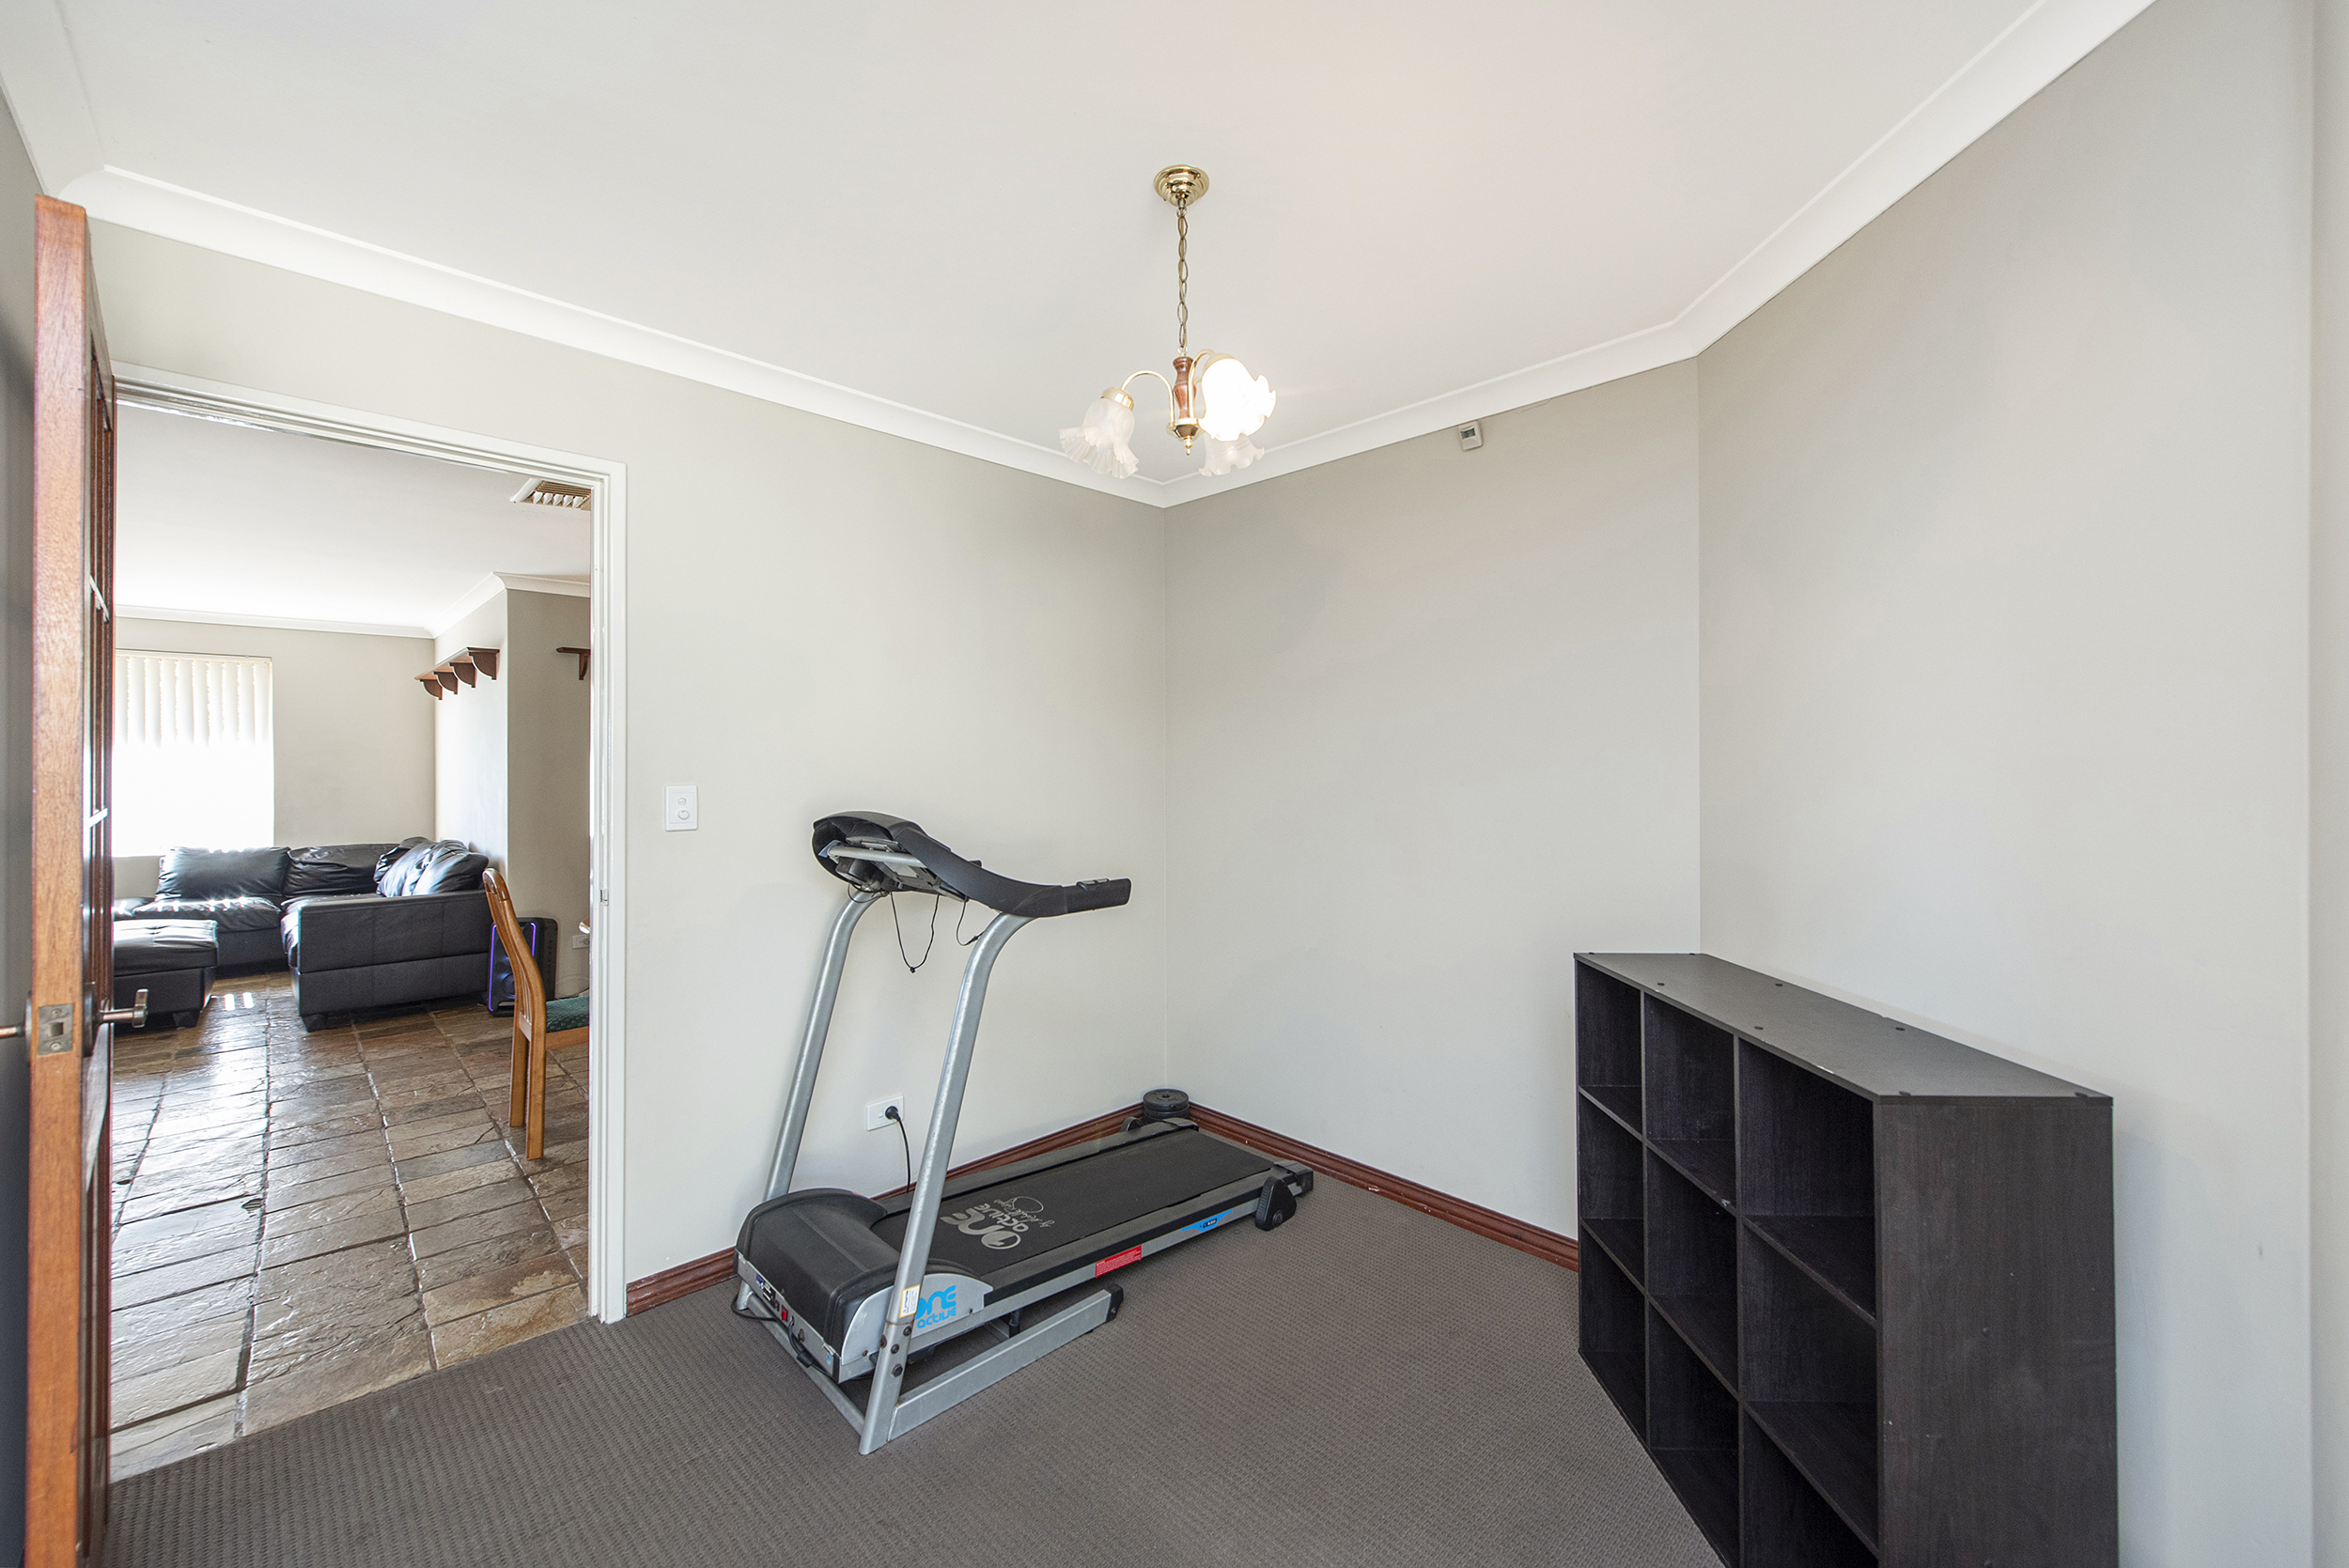 Property for sale in MOUNT RICHON, 46 Amethyst Crescent : Attree Real Estate